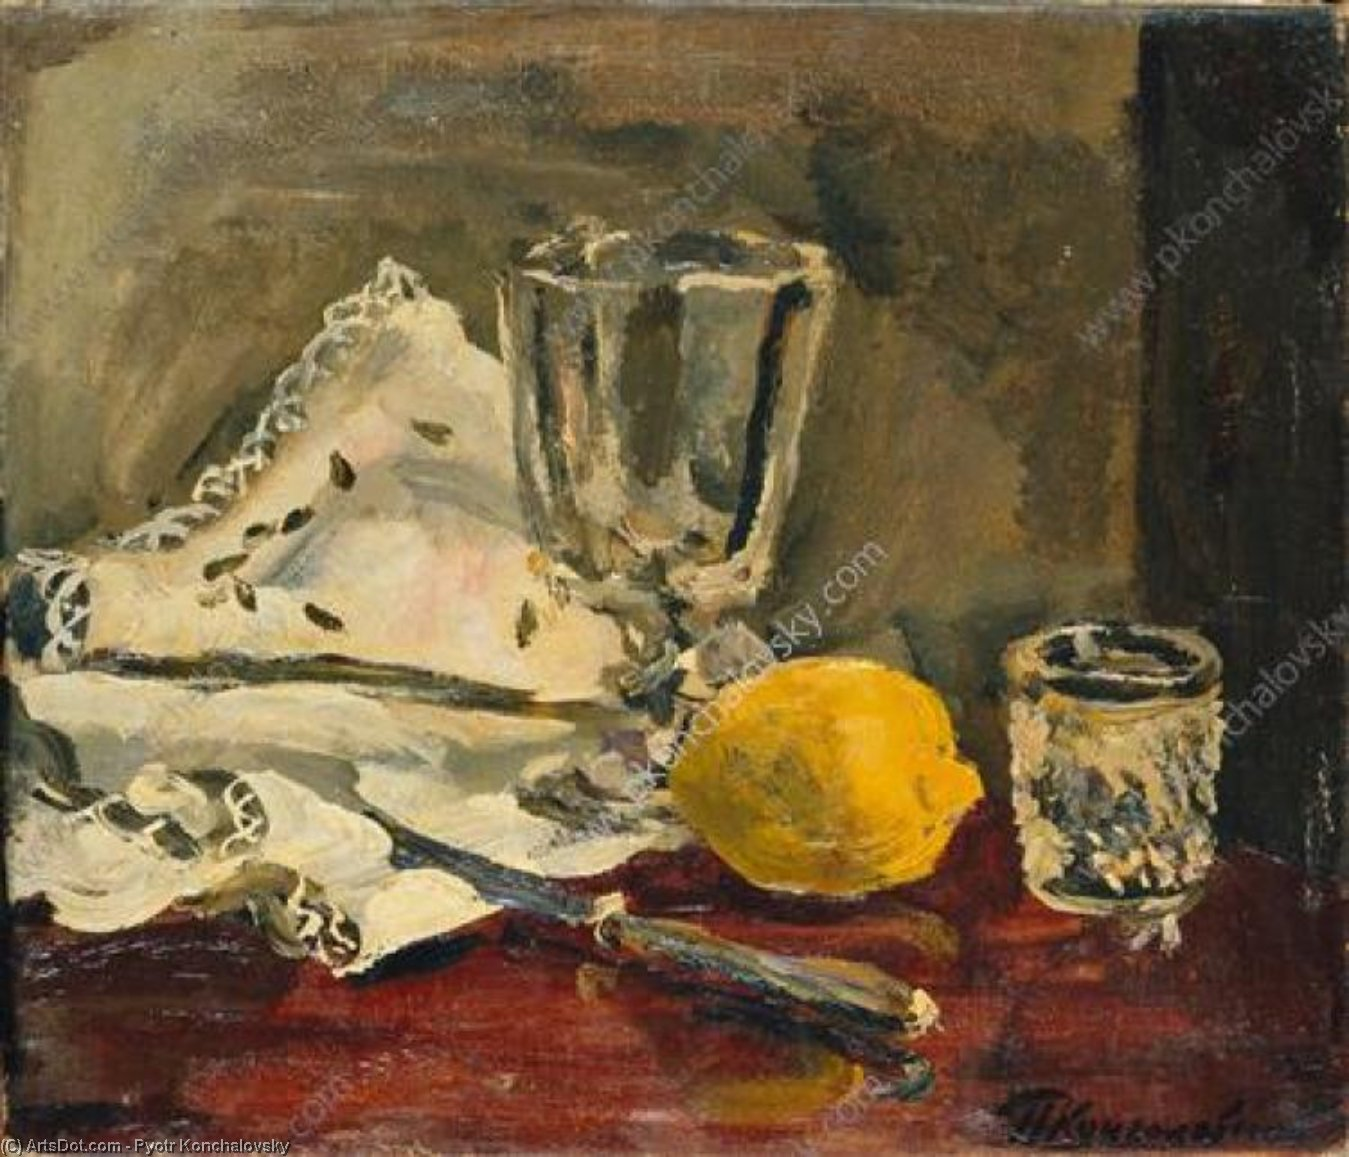 Still Life. Lemon and knife., 1930 by Pyotr Konchalovsky (1876-1956, Russia)